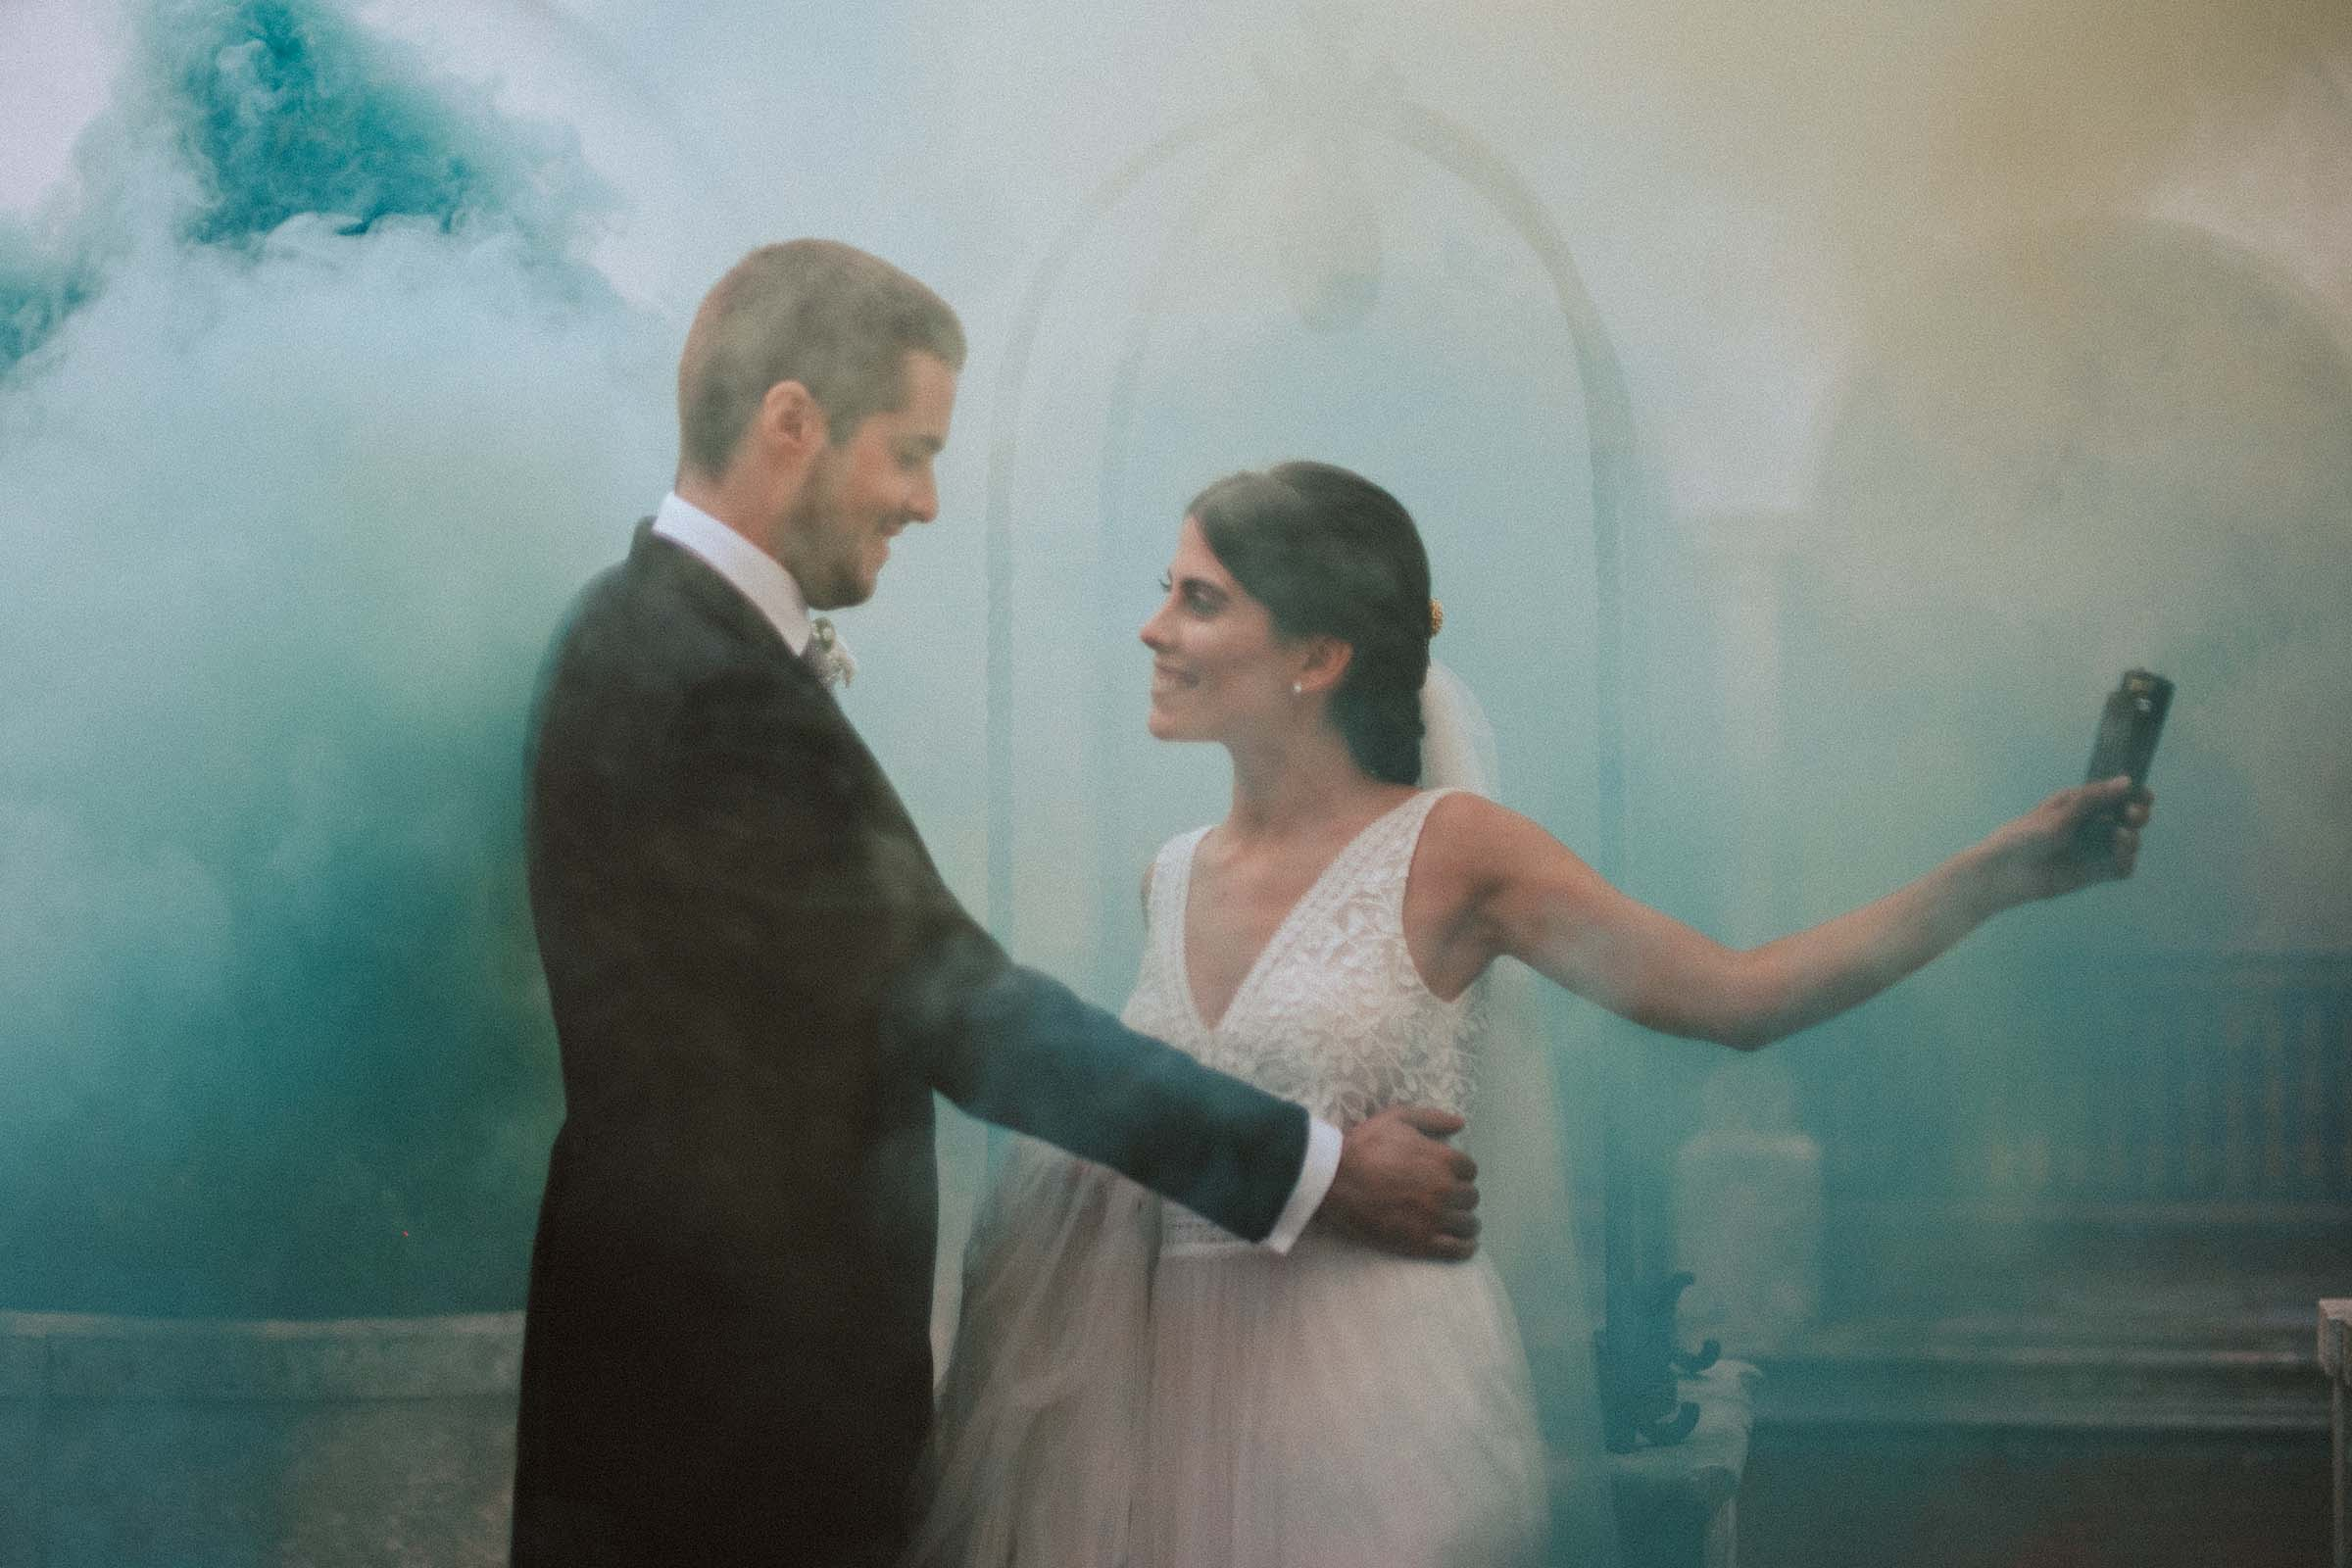 couple dancing in smoke bomb